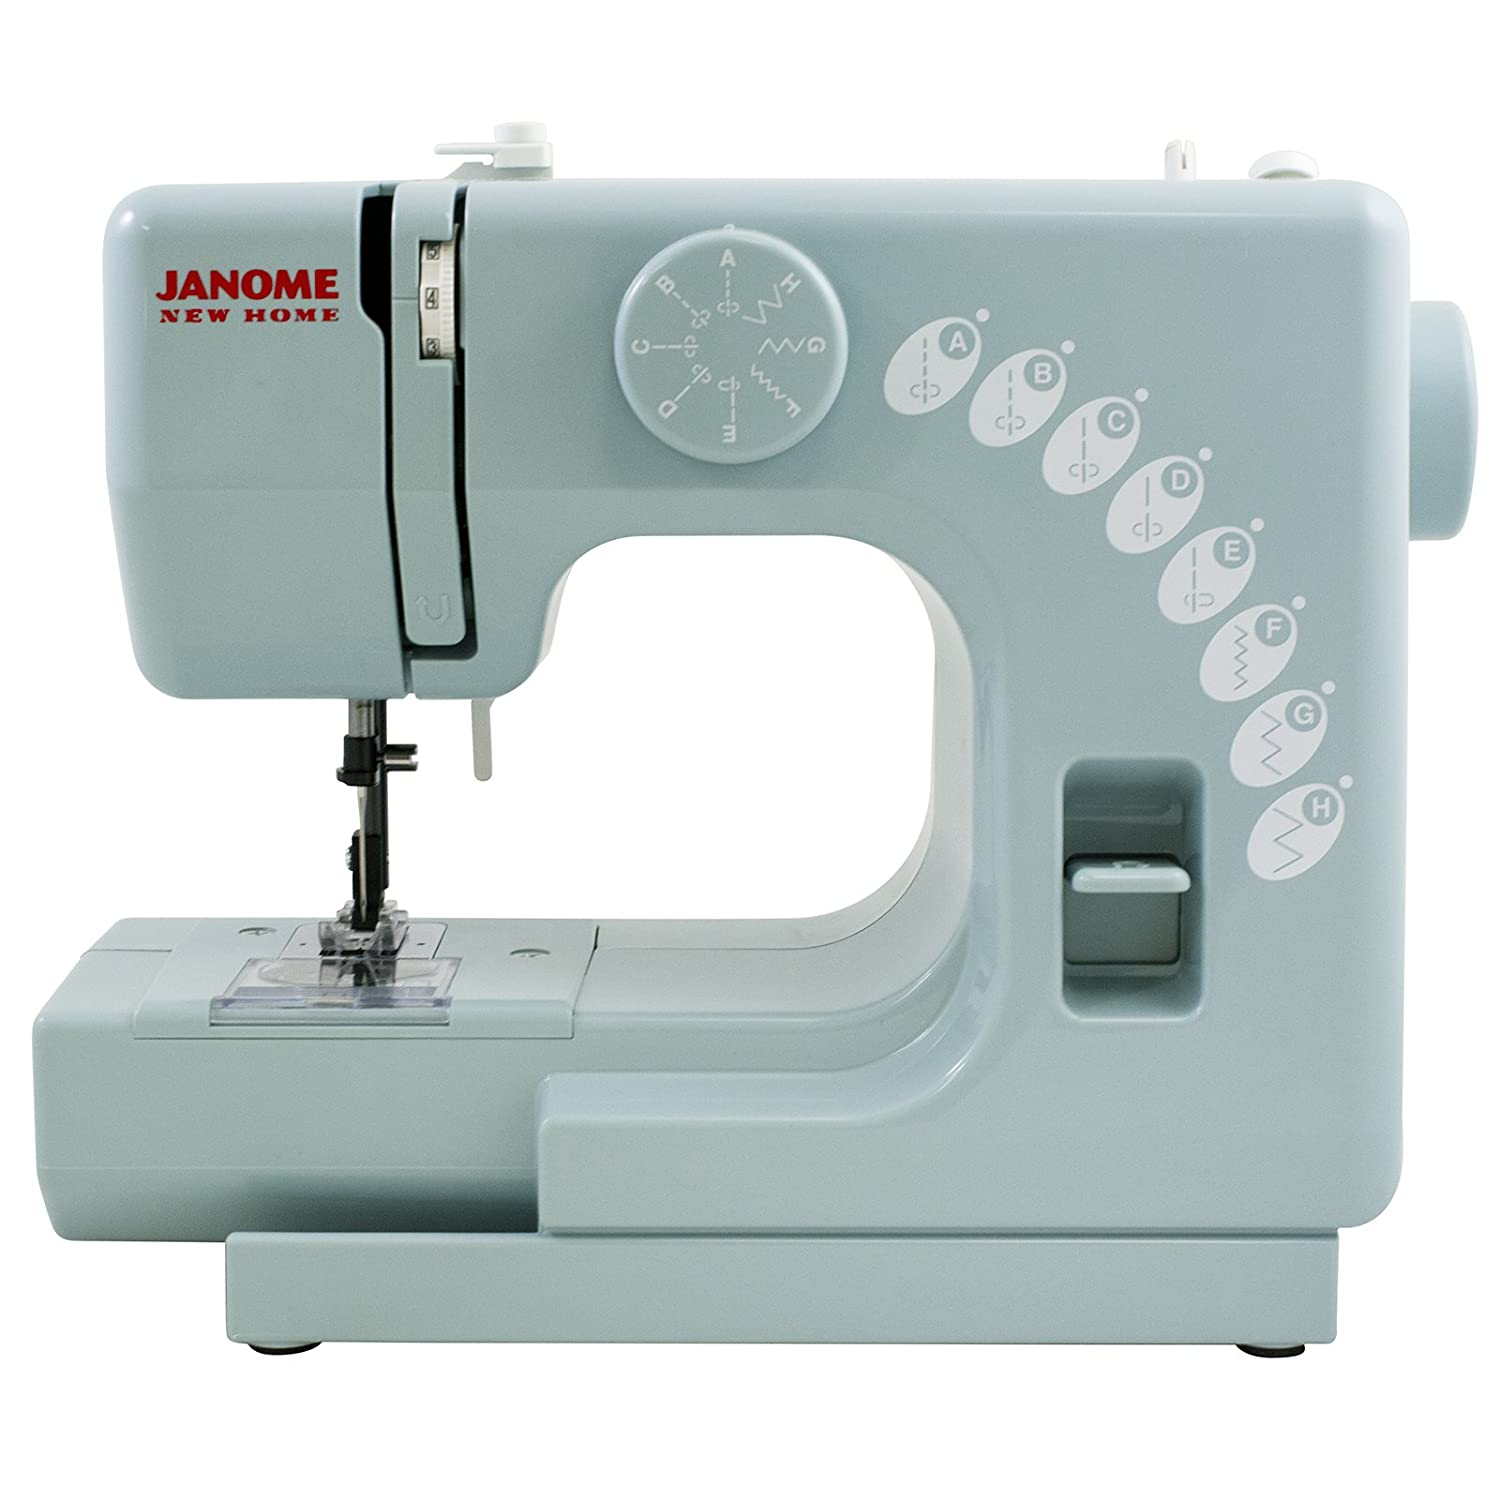 frayed janome bit review machine mini just a quilt img and skyline free quilting pattern sewing